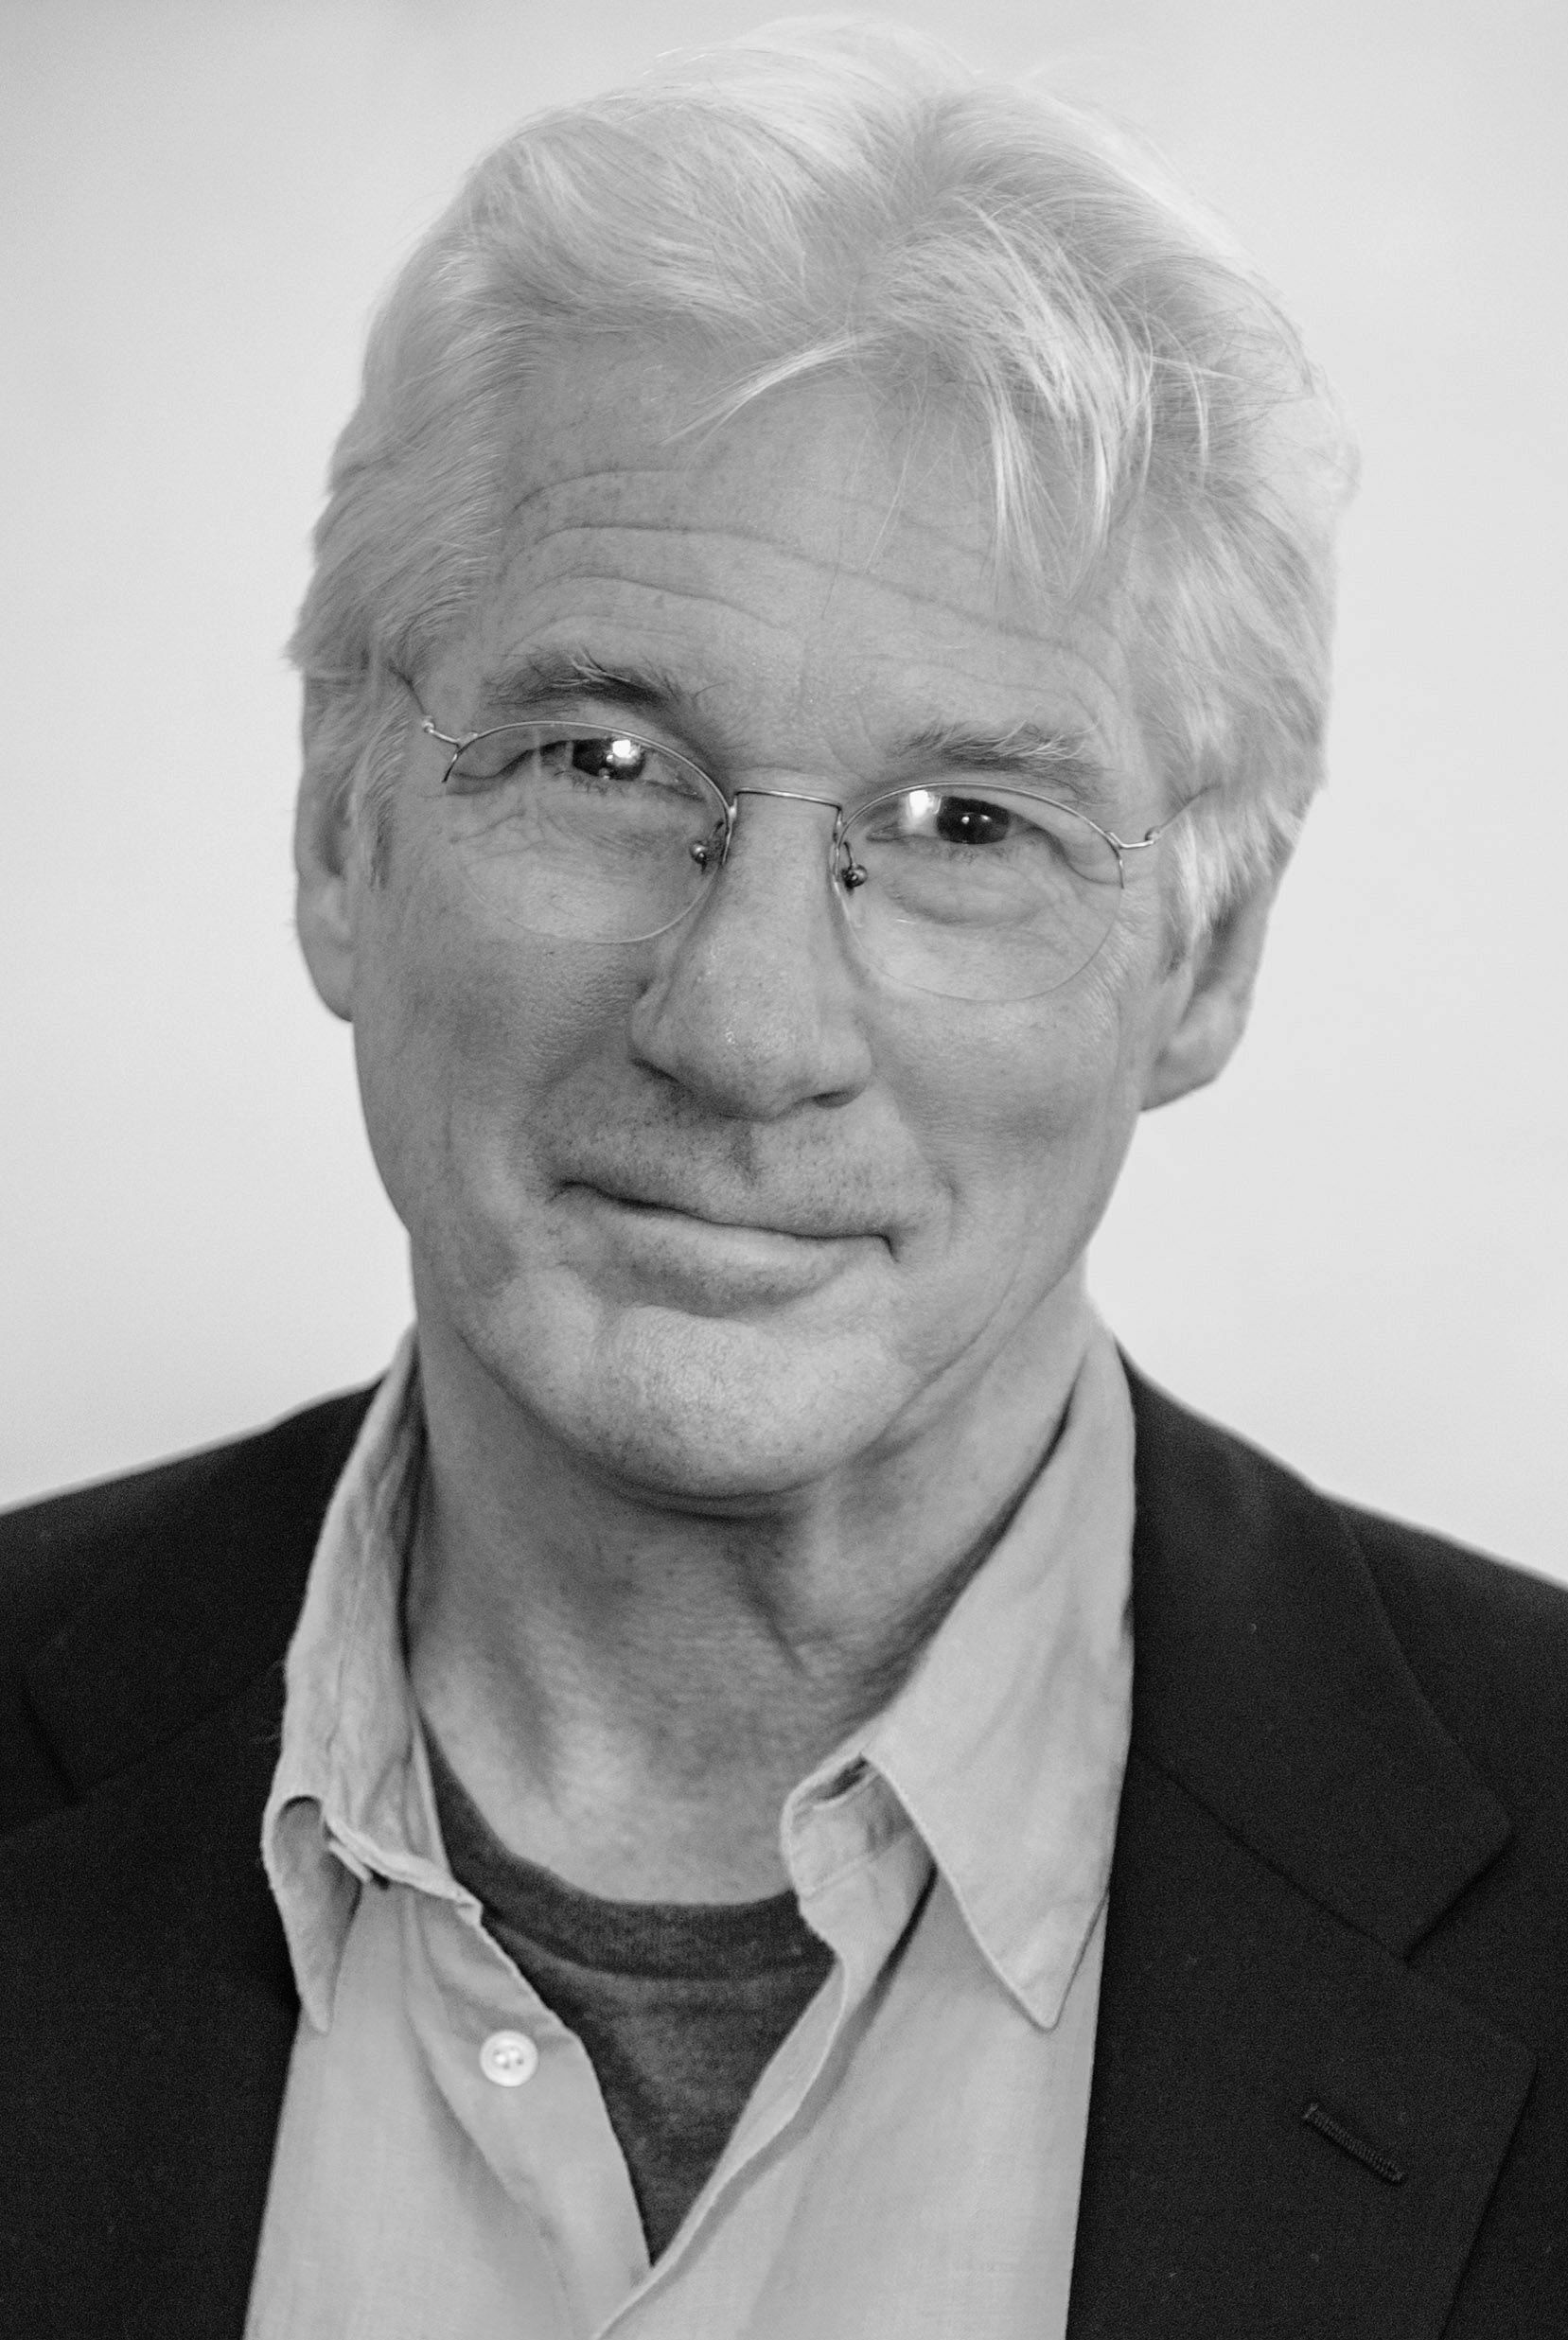 Photo of Richard Gere: Actor from the United States